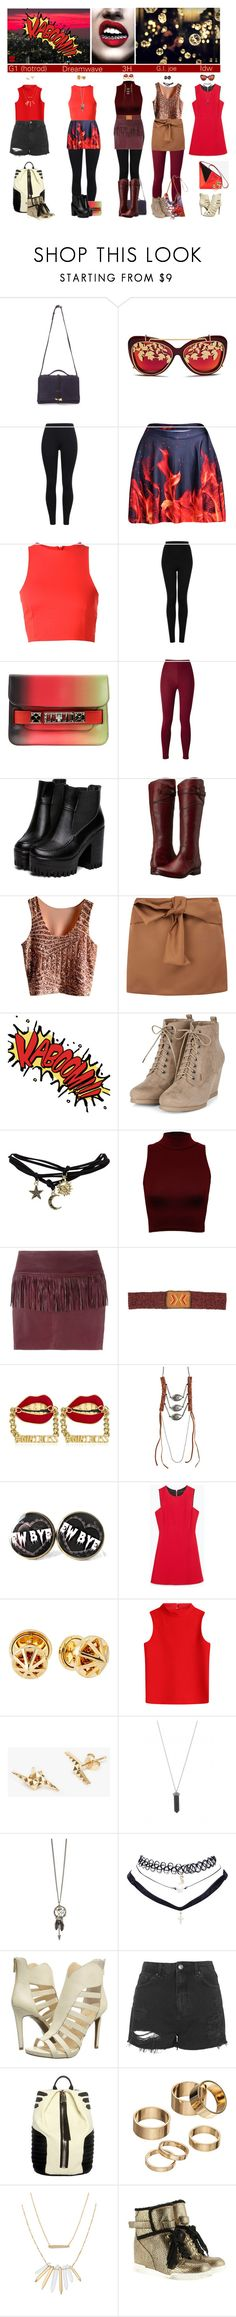 """""""Hotrod = Rodimus prime"""" by femme-mecha ❤ liked on Polyvore featuring Matthew Williamson, T By Alexander Wang, Topshop, Proenza Schouler, Frye, N°21, WALL, Wet Seal, WearAll and IRO"""